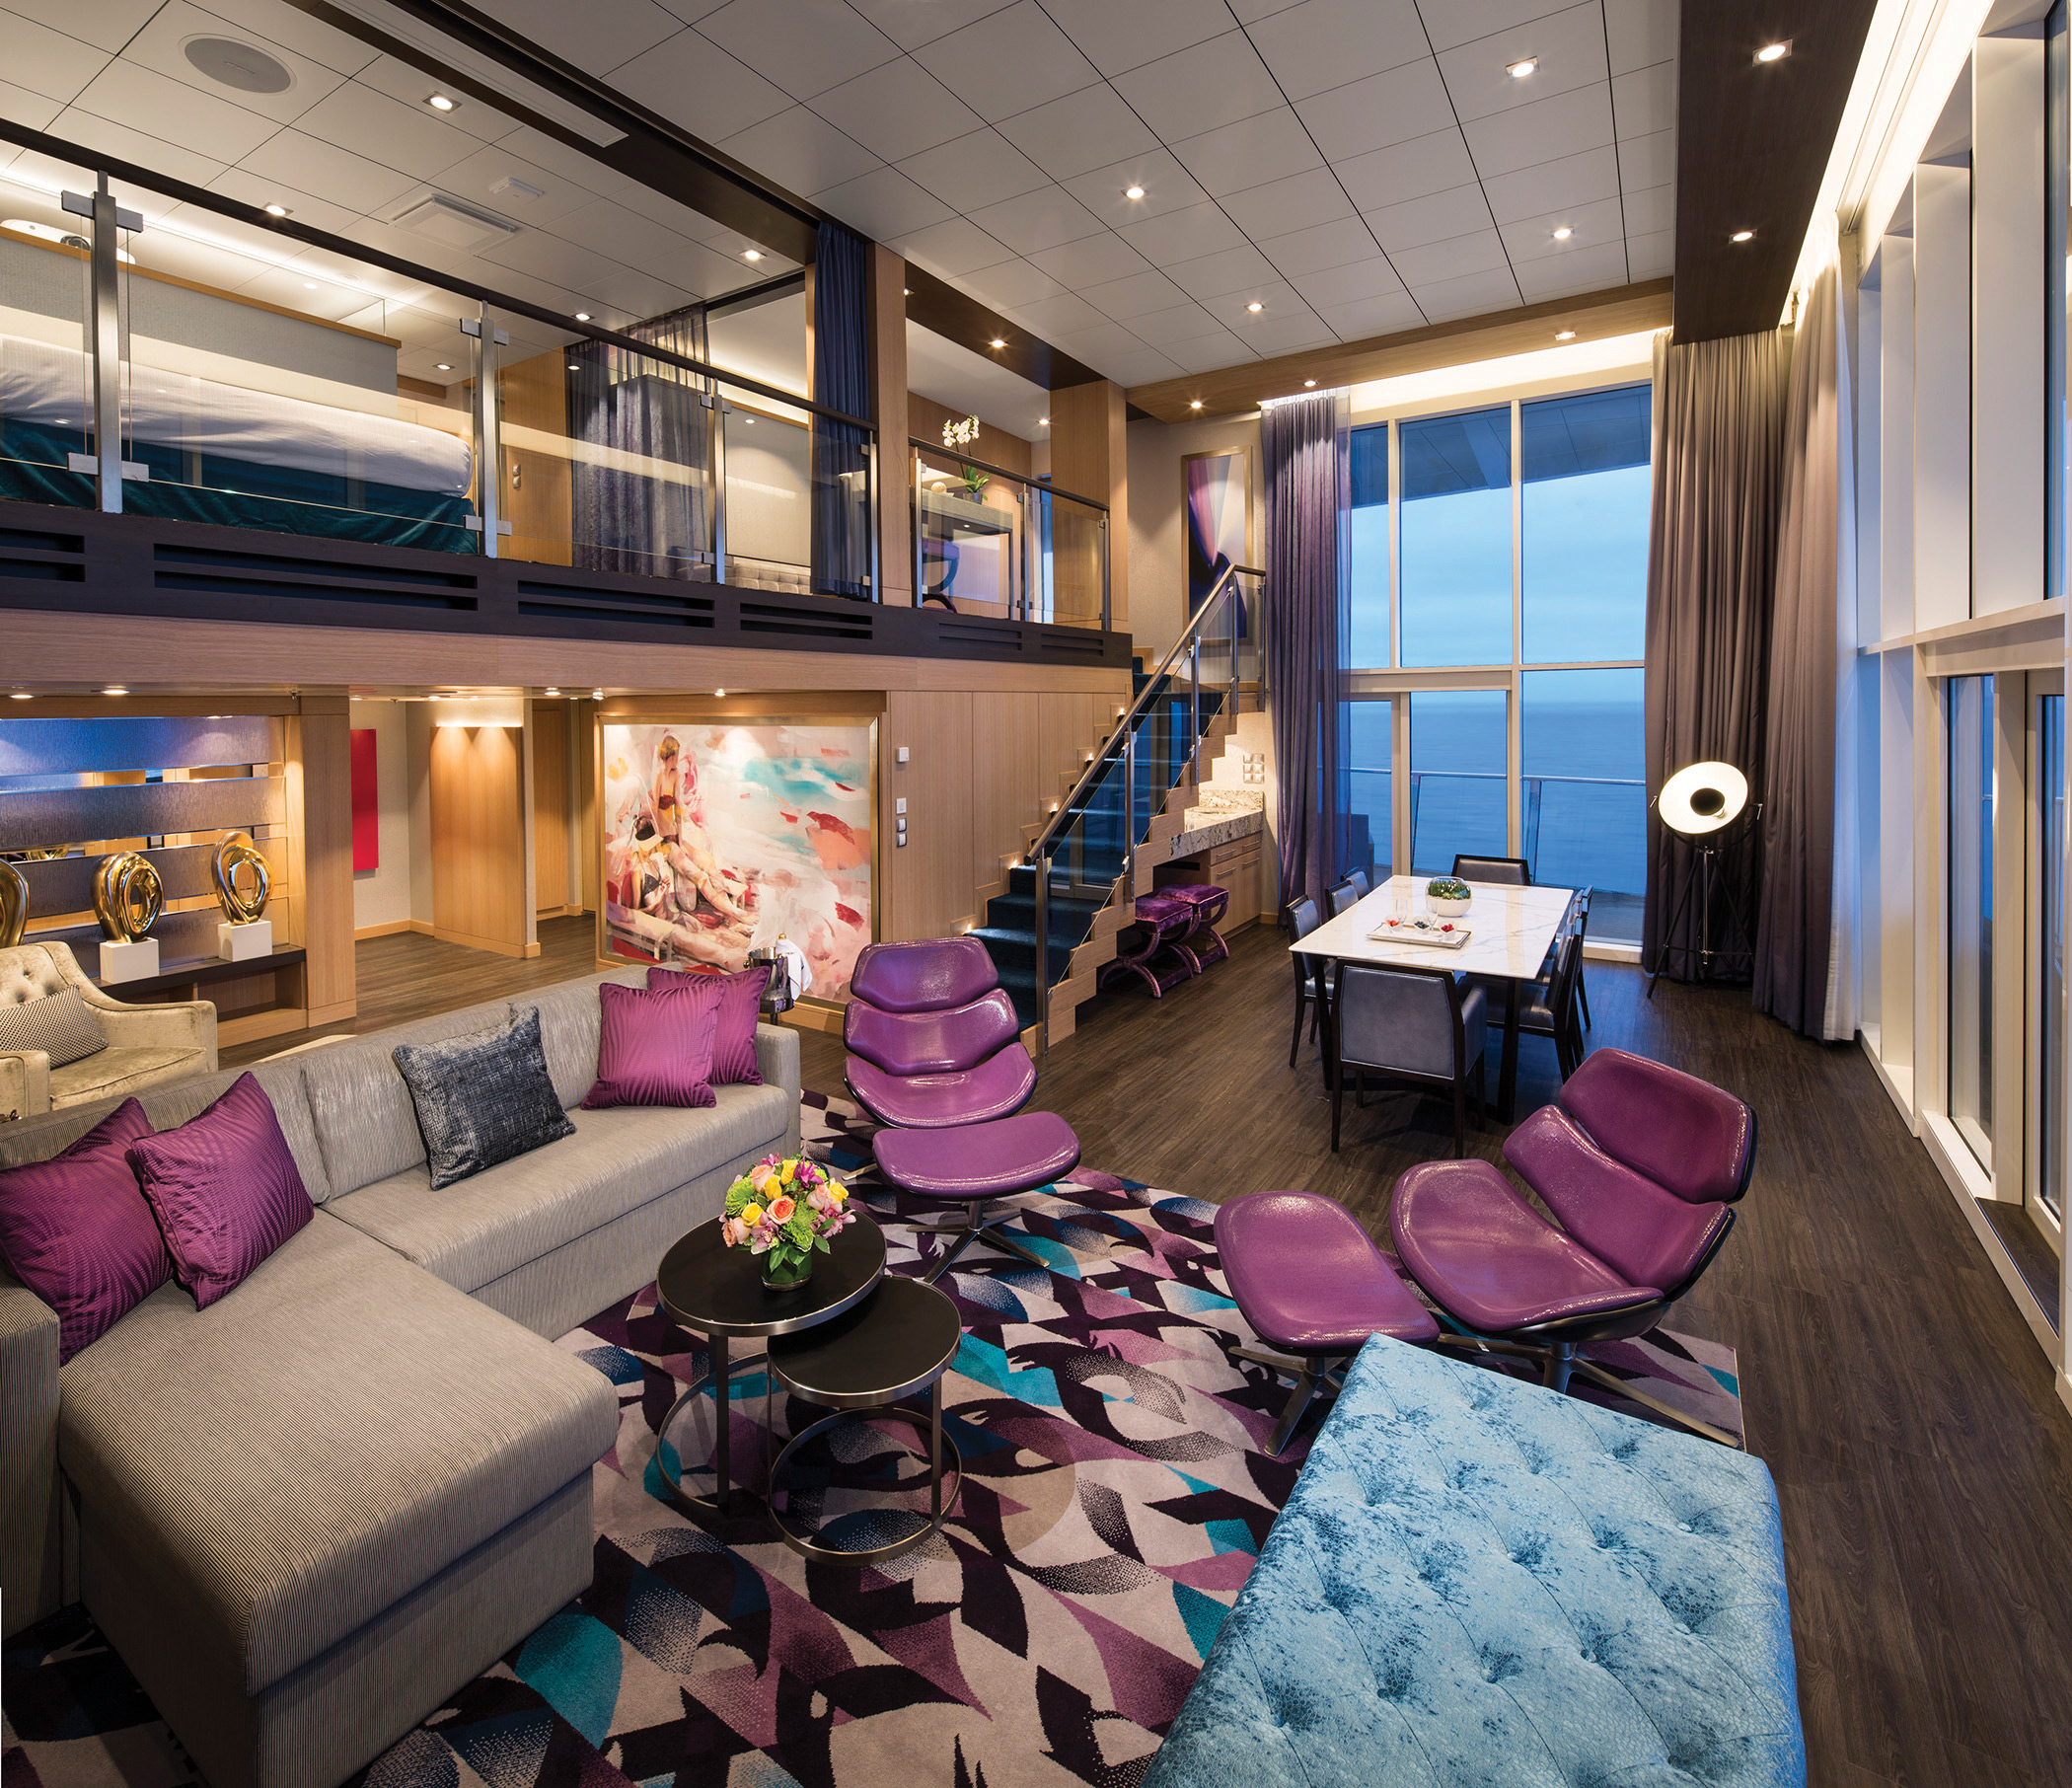 Harmony of the Seas' 2-deck-high suites